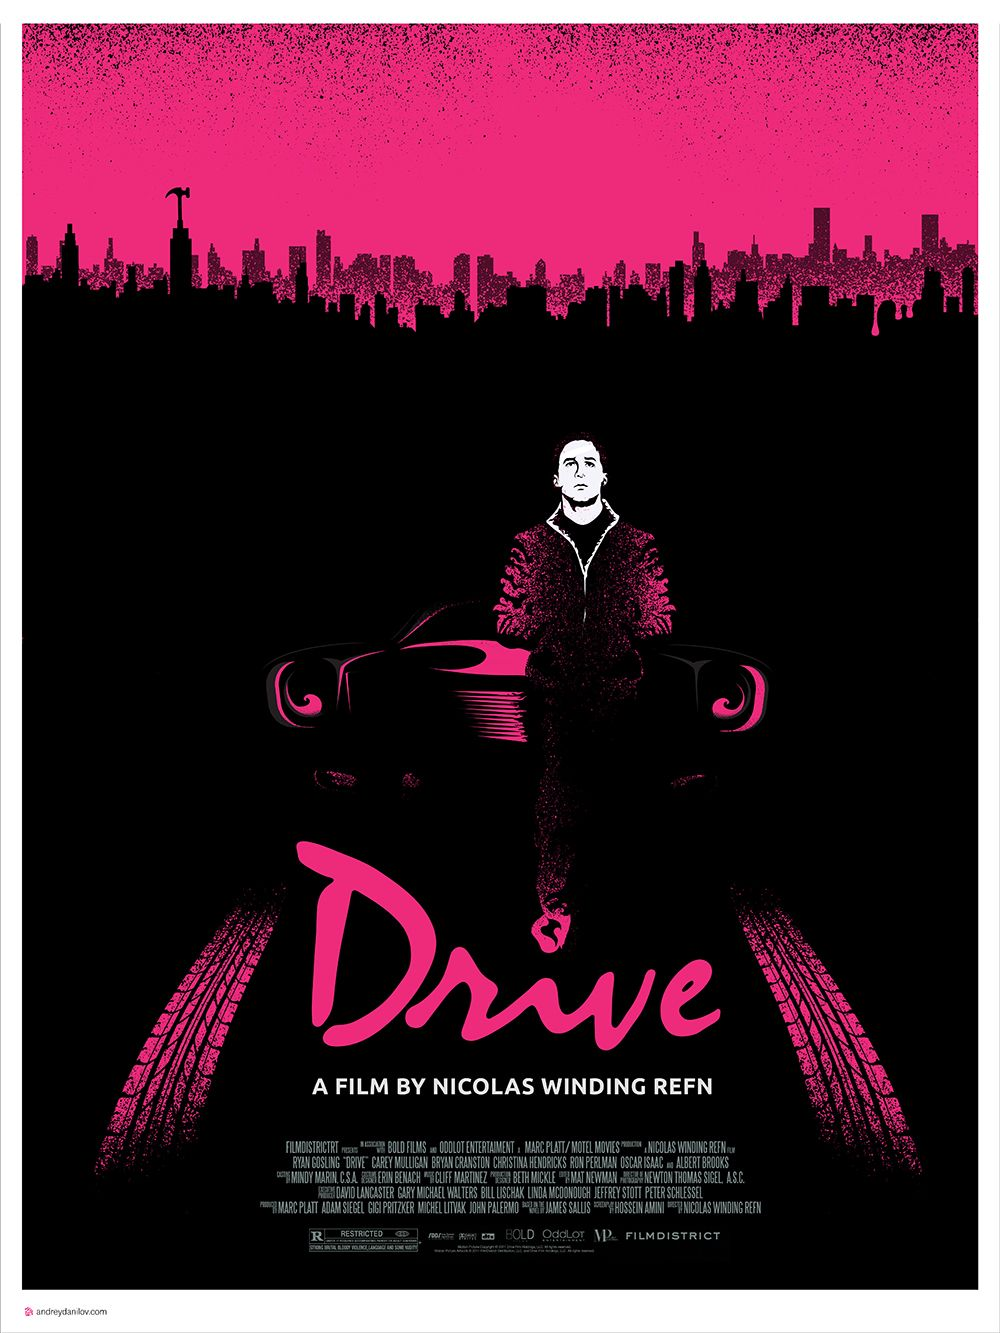 Drive Poster Design Drive Poster Movie Posters Design Drive Movie Poster